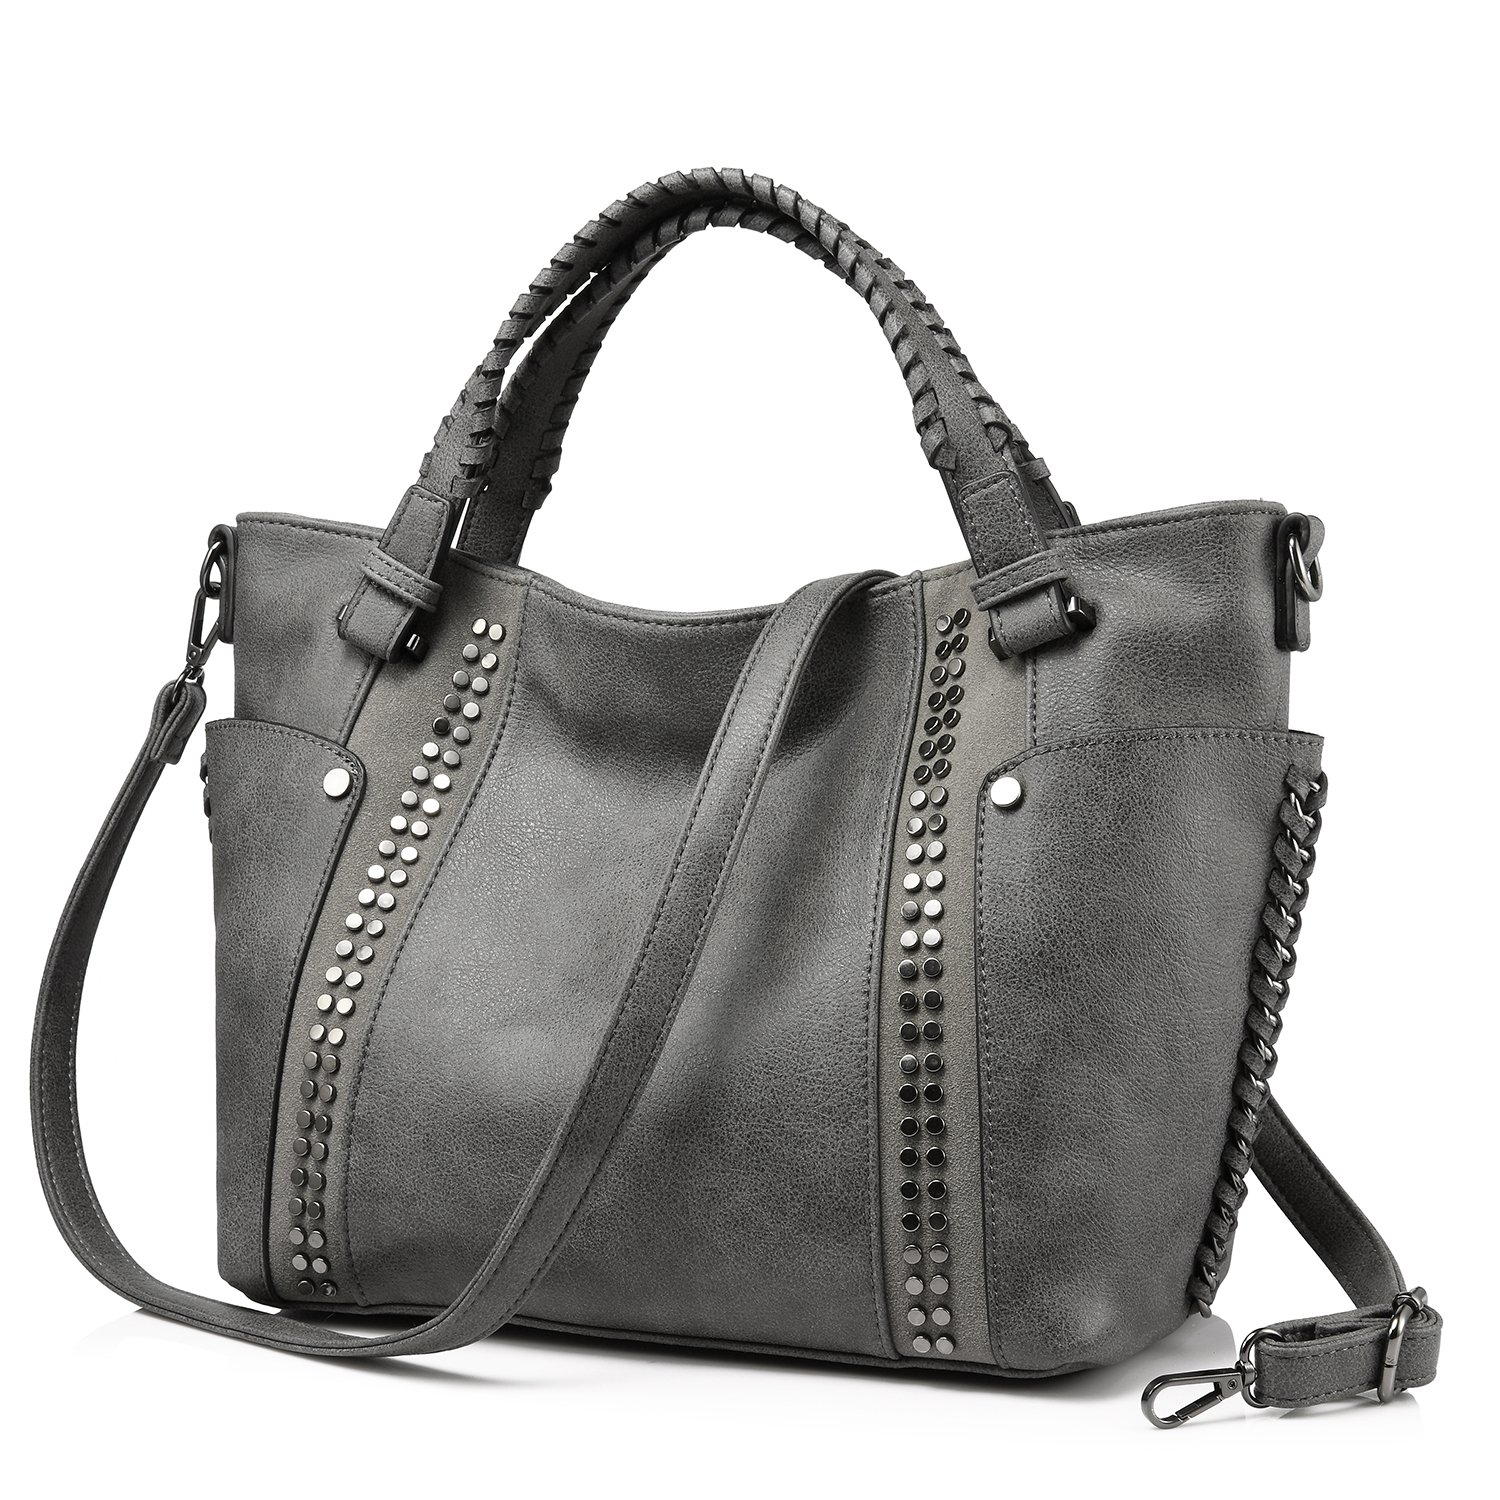 618b4a0b17ac Tote Bag for Women Large Faux Leather Purse and Handbags Ladies Work ...